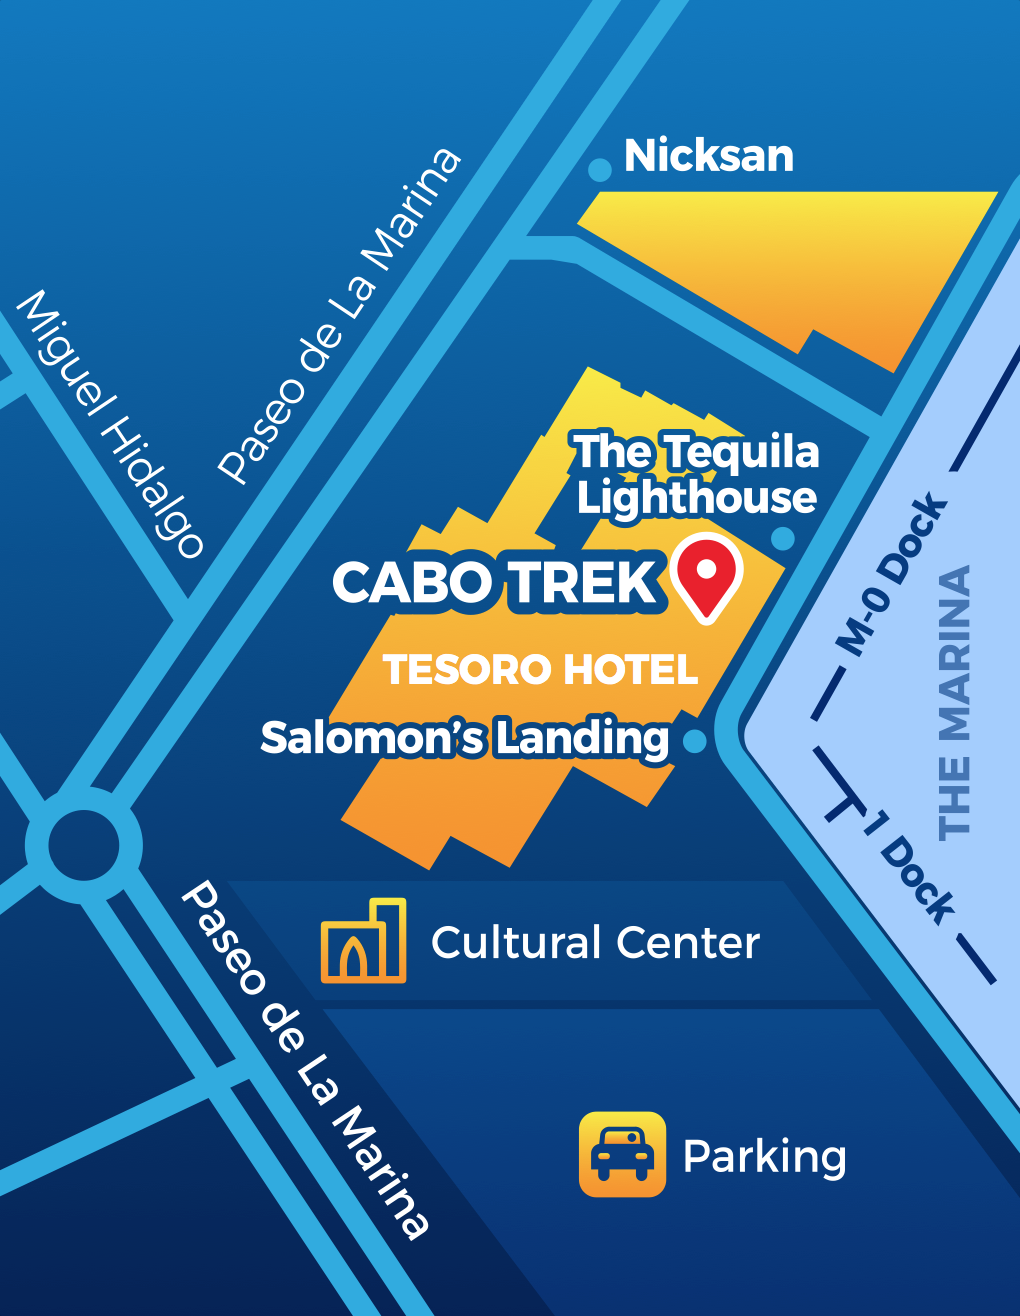 Cabo Trek new location